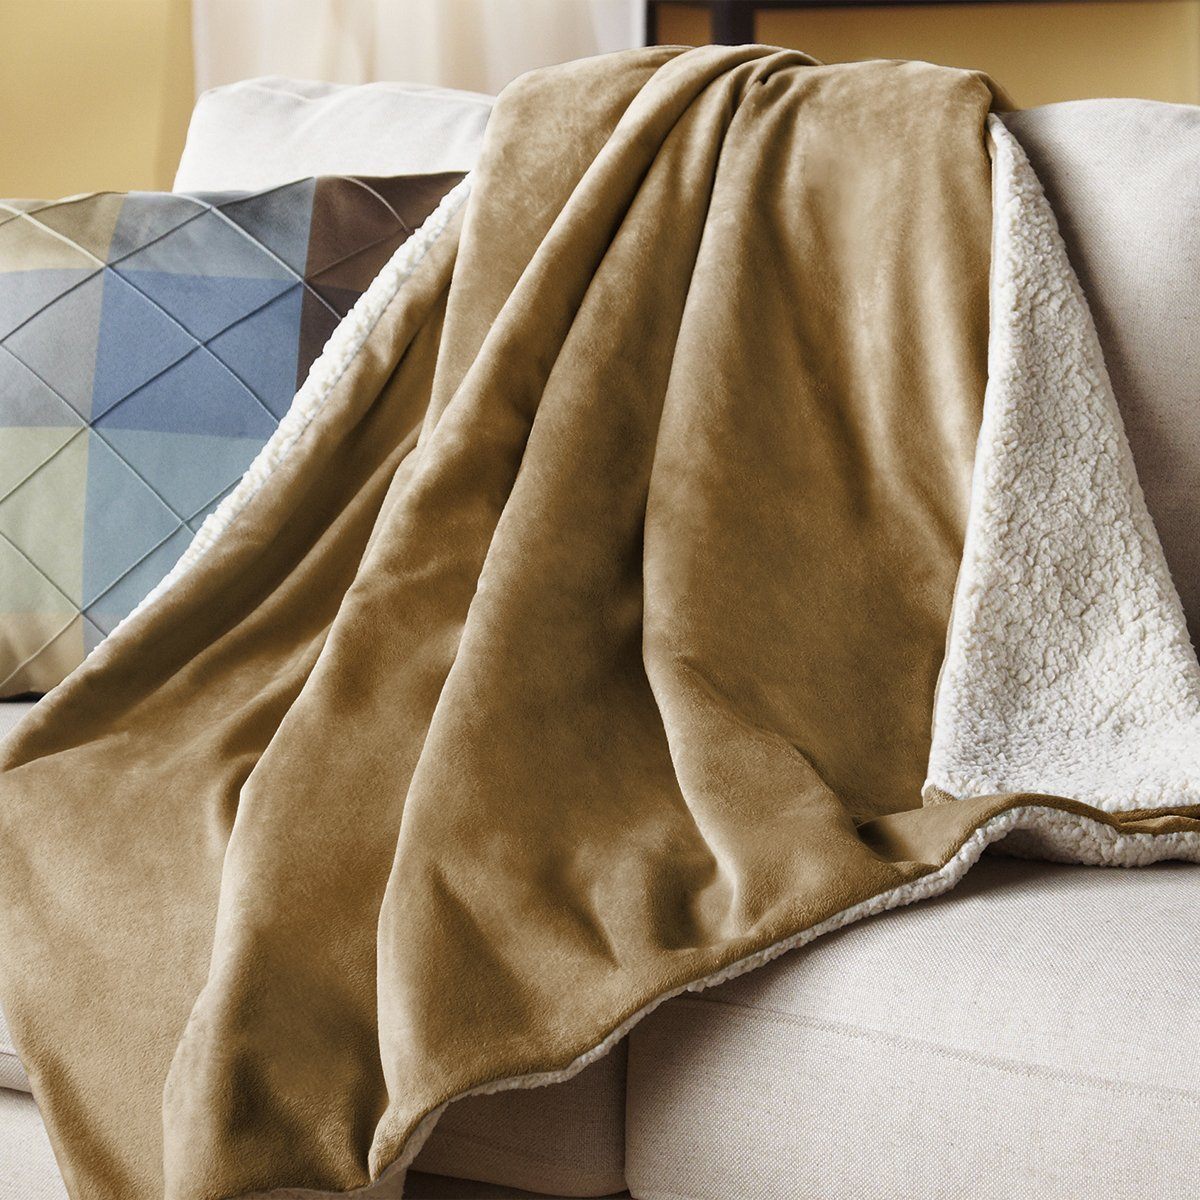 stay warm this winter with this heated throw blanket on sale for cyber monday deals week the. Black Bedroom Furniture Sets. Home Design Ideas